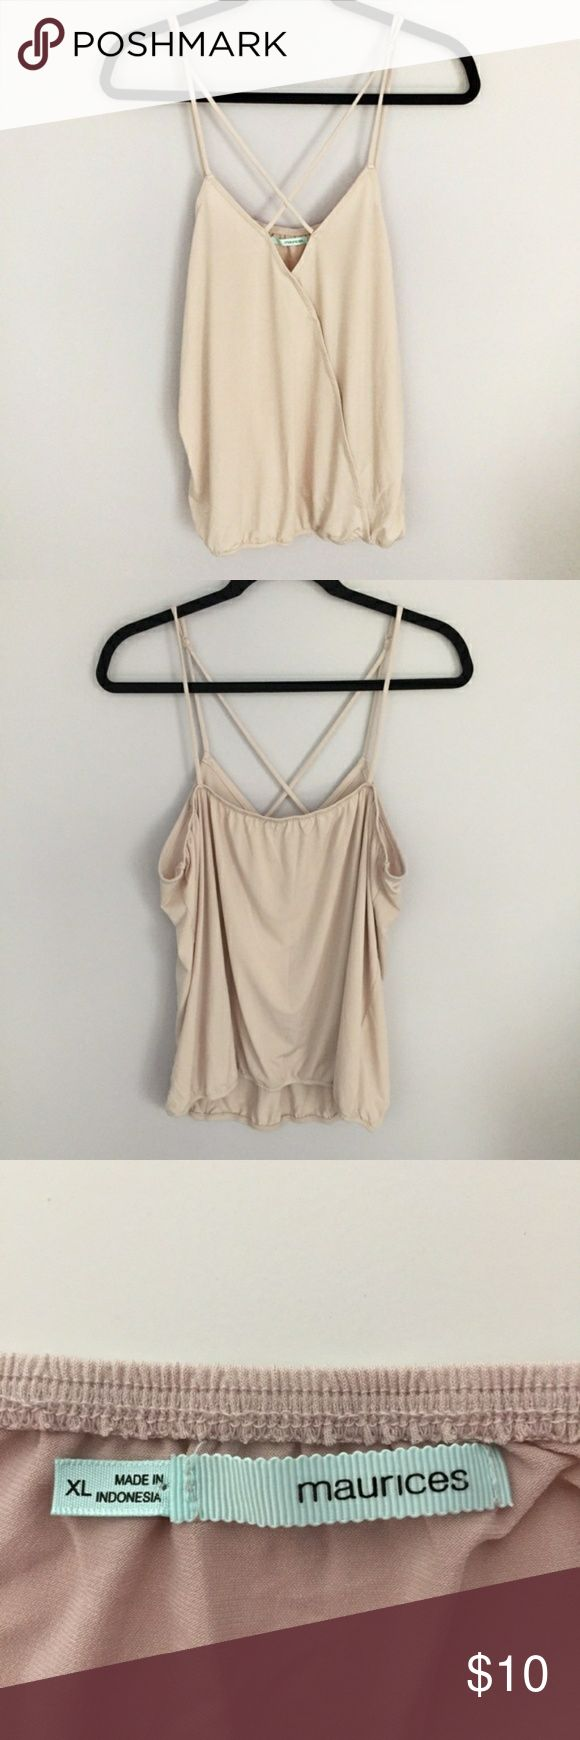 Maurices Size XL Cream CrissCross Strappy Top * In Like New Condition! * No Stains, Fabric Rubbing, or Wear. * Nude or Cream Colored. * CrissCross Criss Cross Wrap Style, Strappy Sleeveless Blouse Top * Very Sexy & Flattering! * Can be worn alone, on top of a plain shirt, or underneath a nice sweater or cardigan.  **Same or Next Day Shipping!** Maurices Tops Blouses